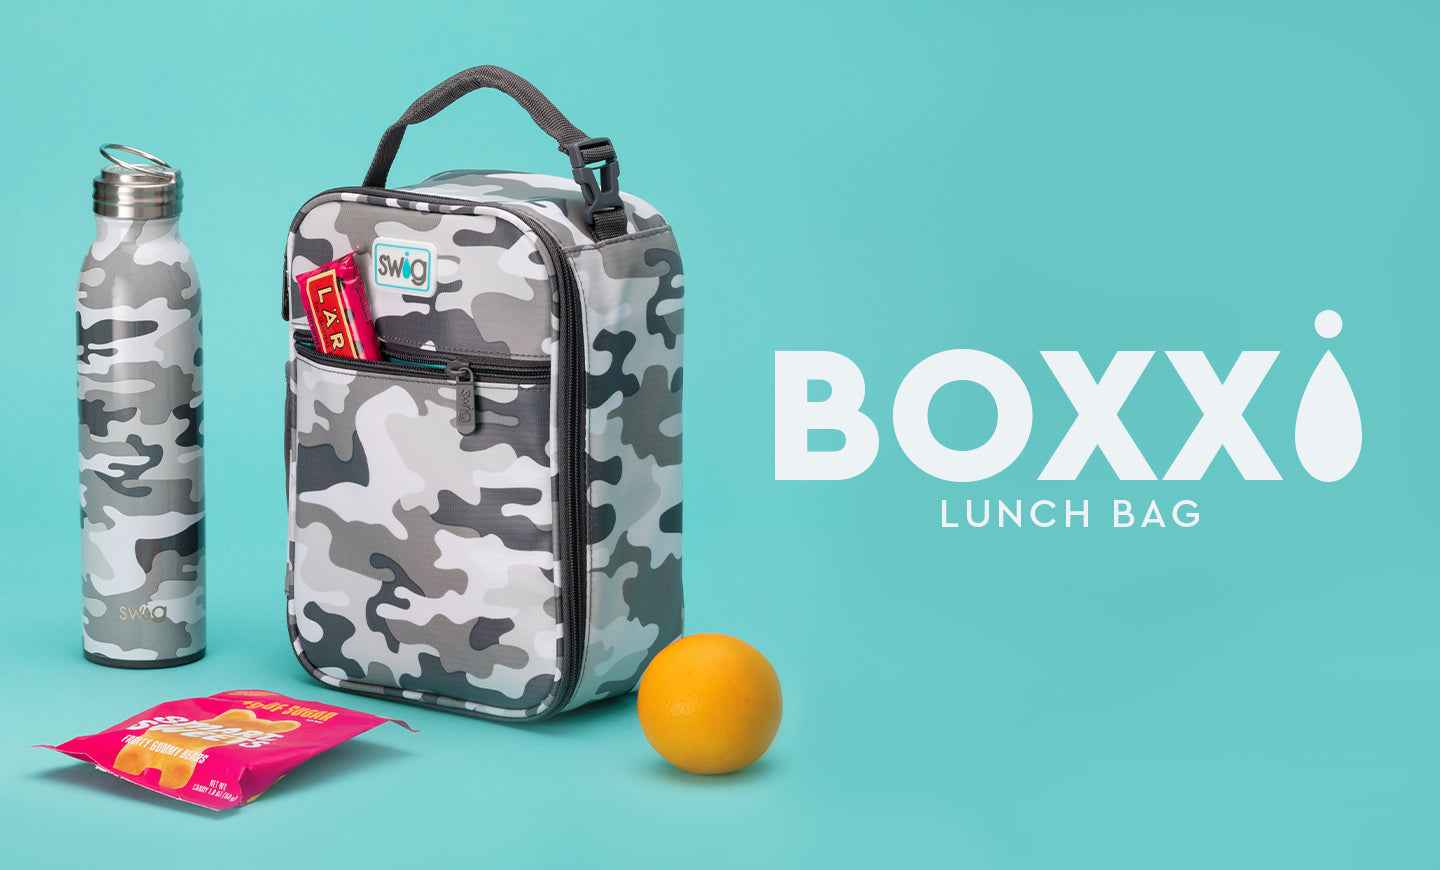 Boxxi Lunch Bag